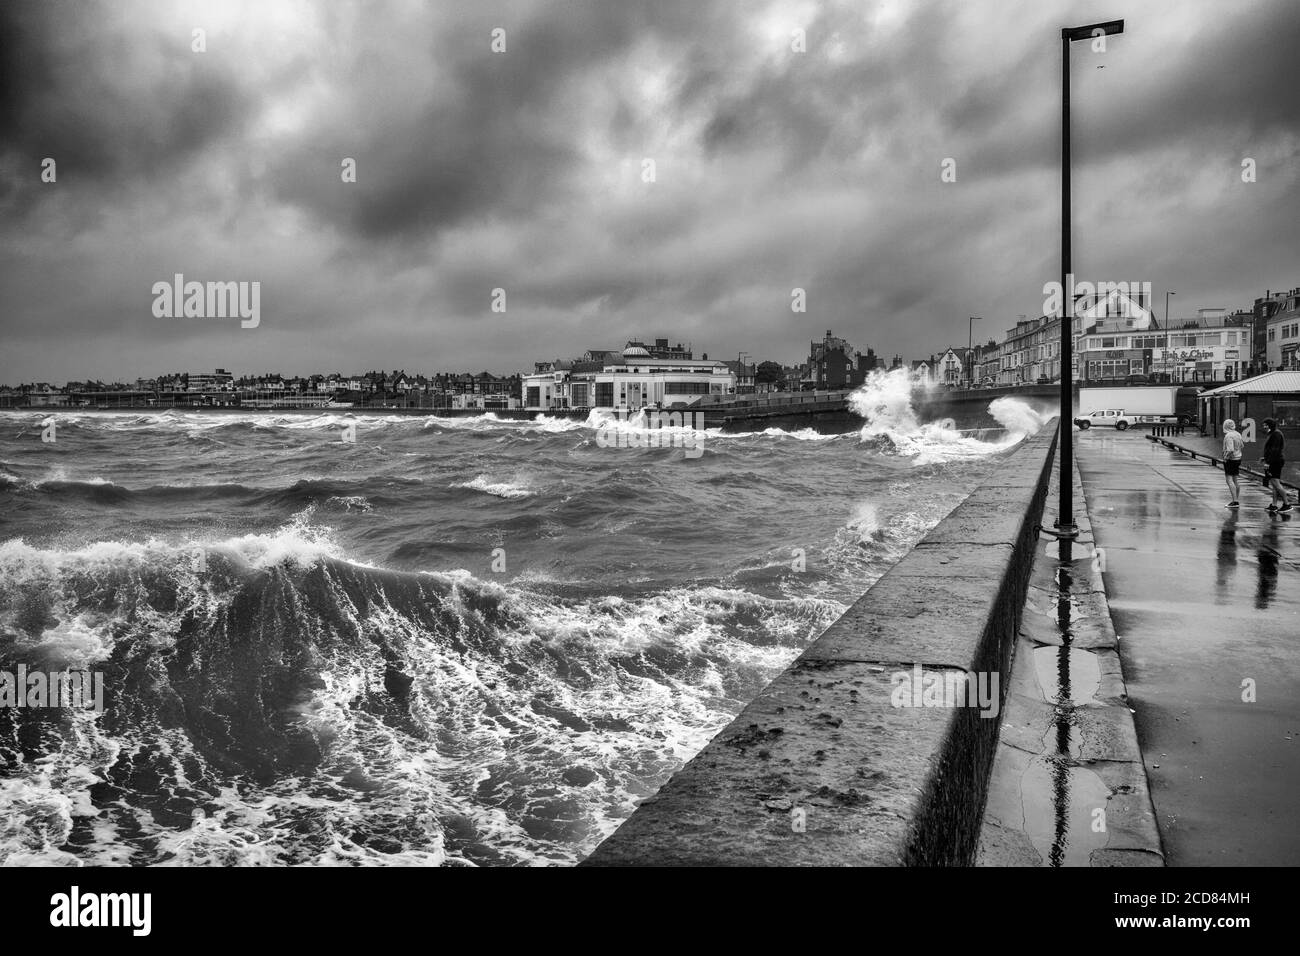 South Beach under threatening clouds and a stormy sea,  Bridlington, Yorkshire, UK Stock Photo